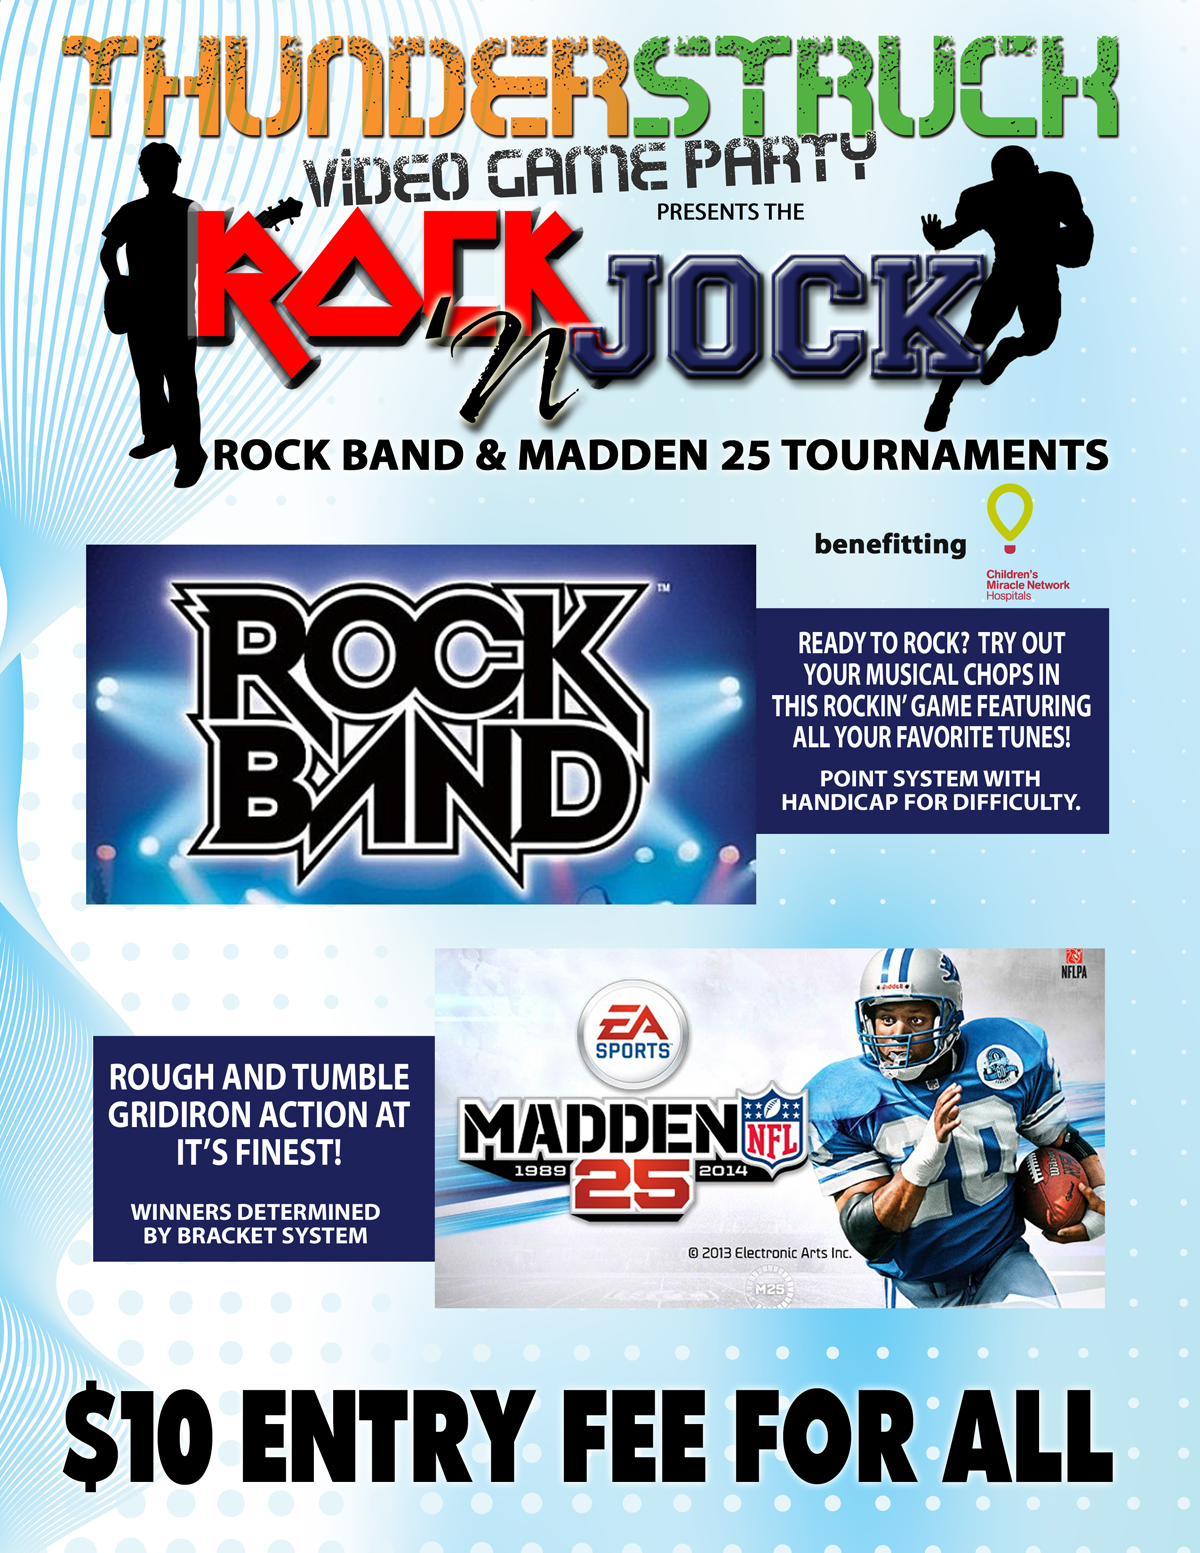 Tournament flyer for Thunder Struck Video Game Party in